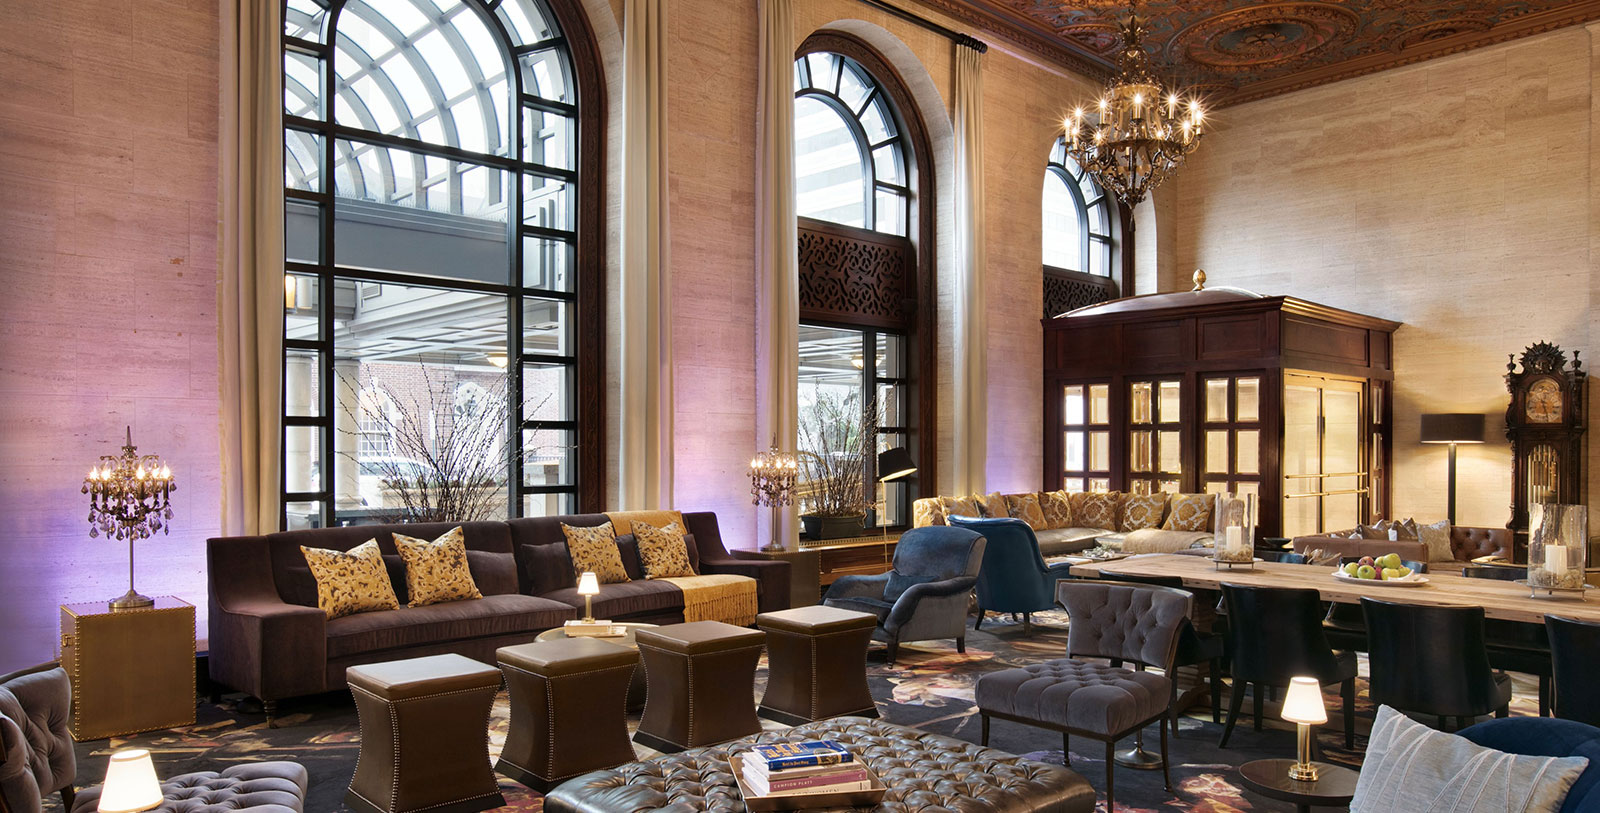 Image of hotel lobby HOTEL DU PONT, 1913, Member of Historic Hotels of America, in Wilmington, Delaware, Explore